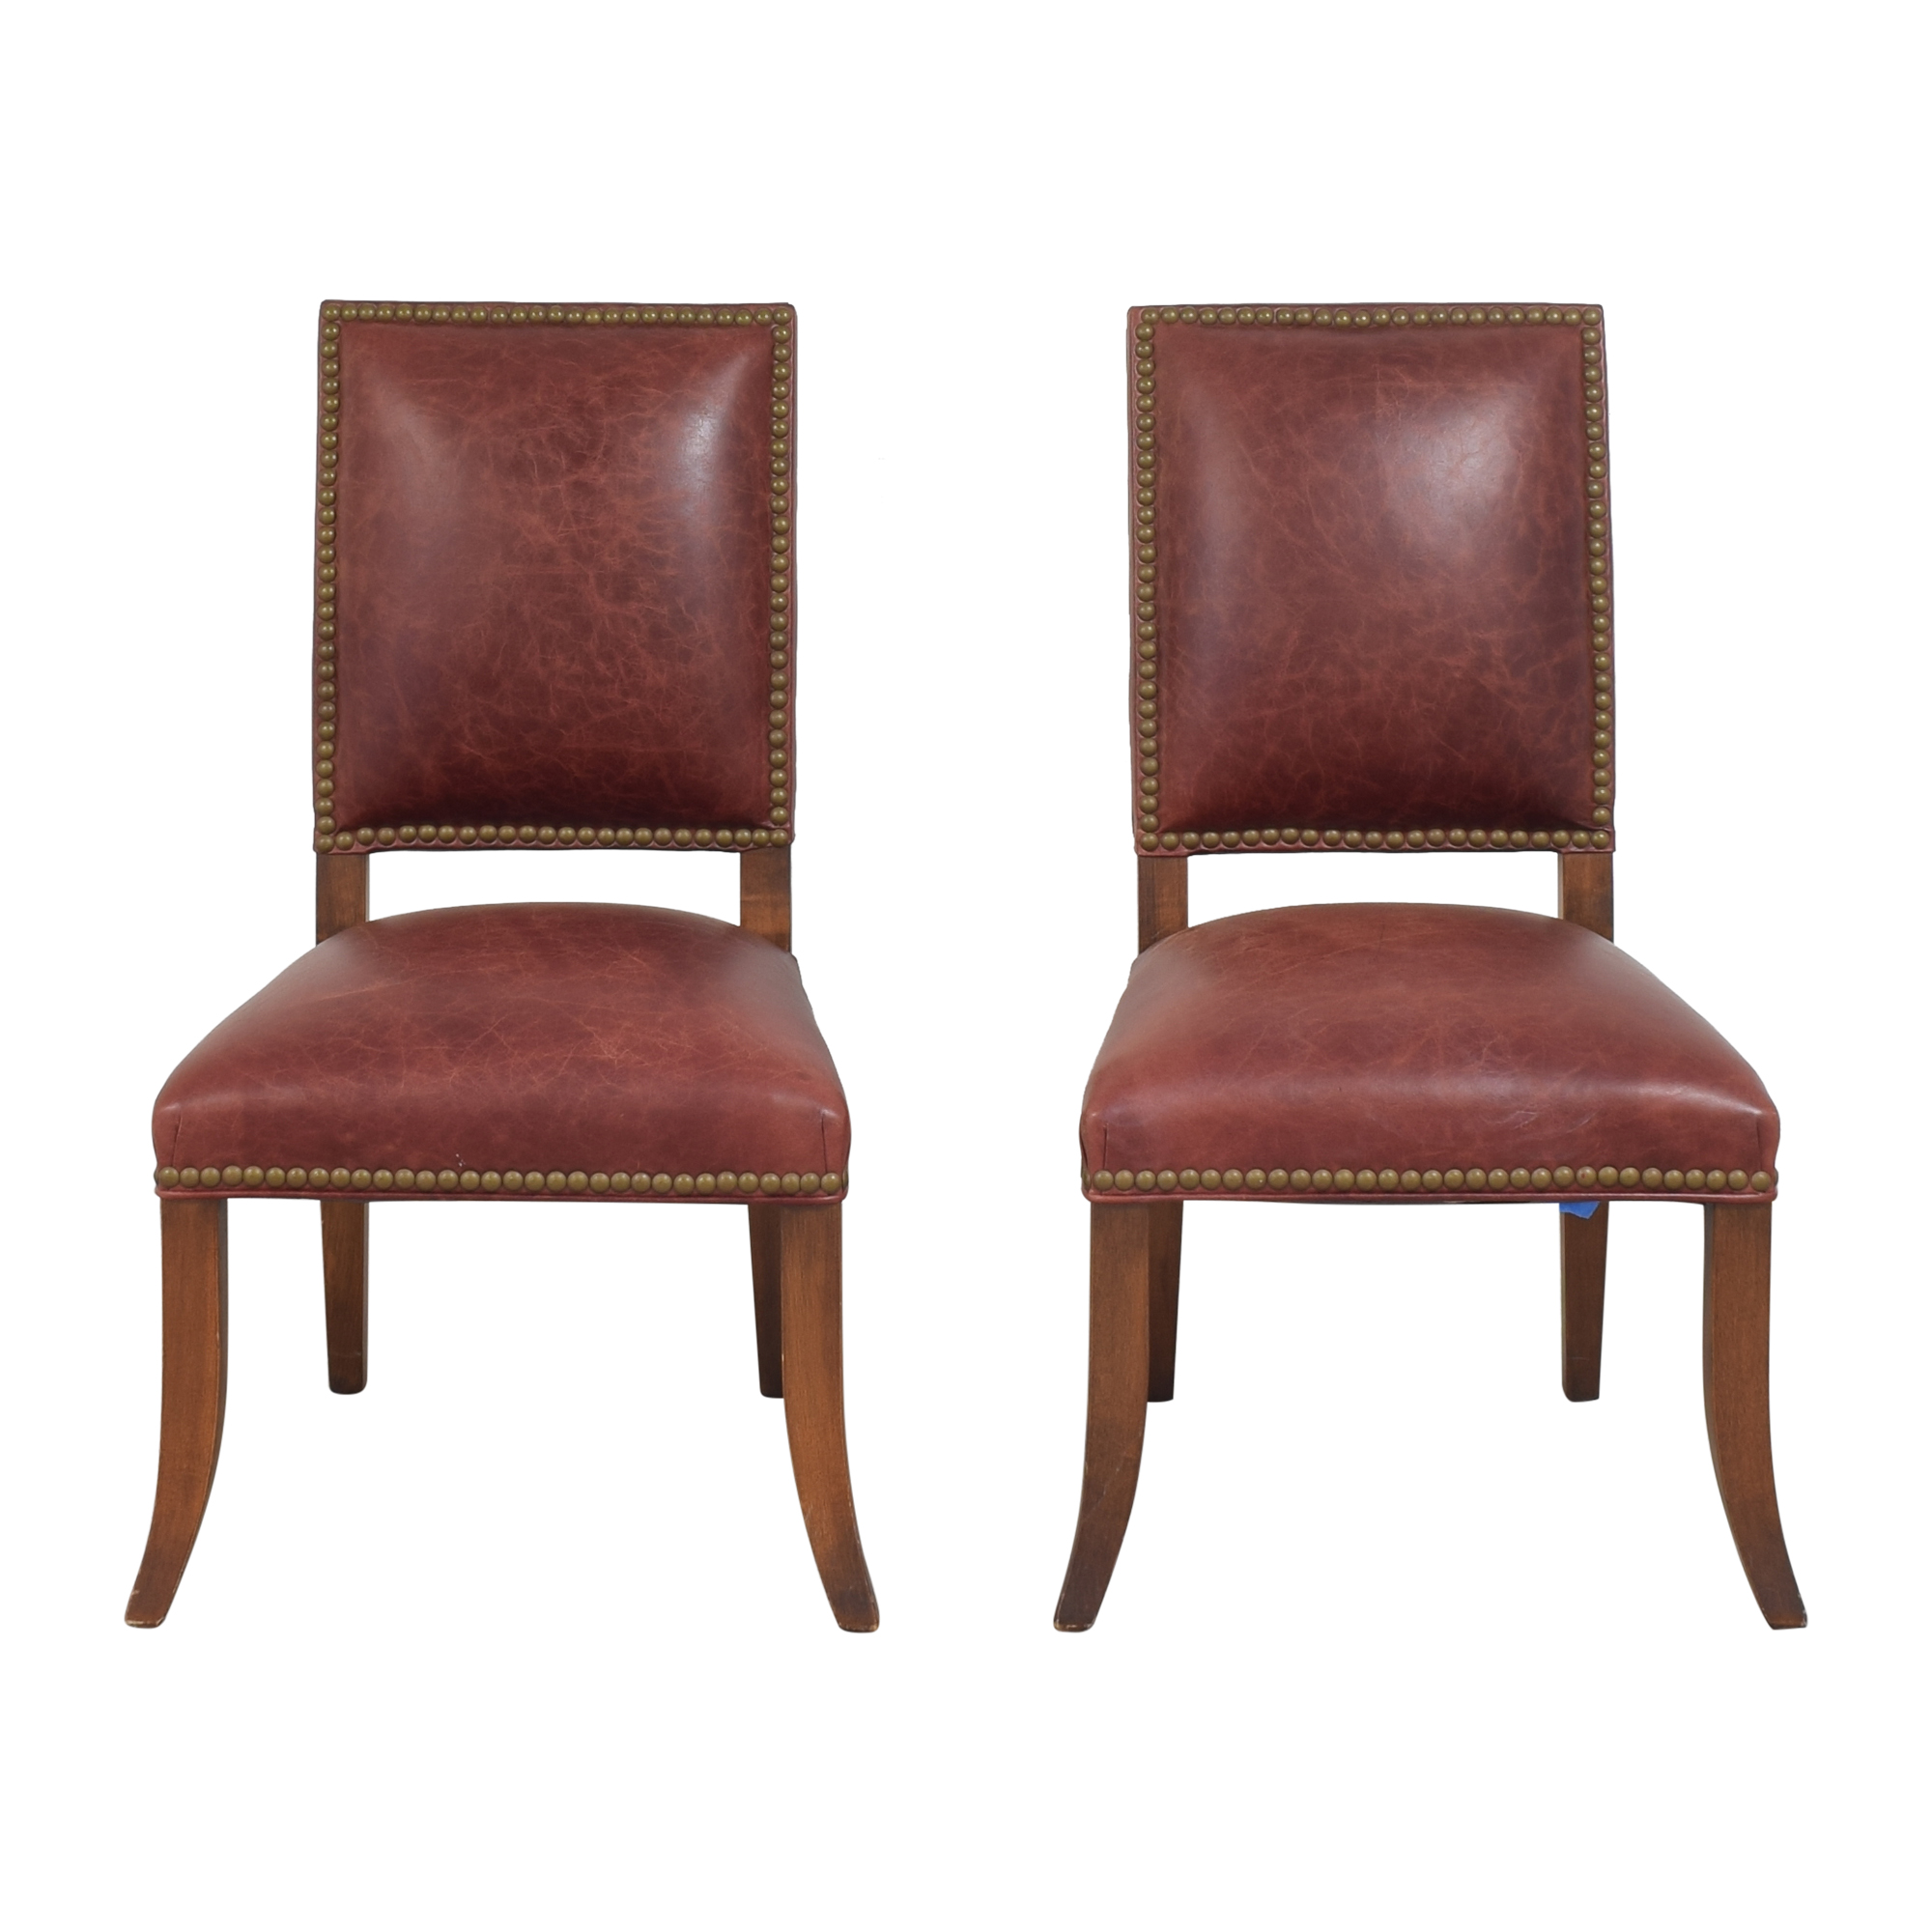 shop Ethan Allen Nailhead Dining Side Chairs Ethan Allen Chairs